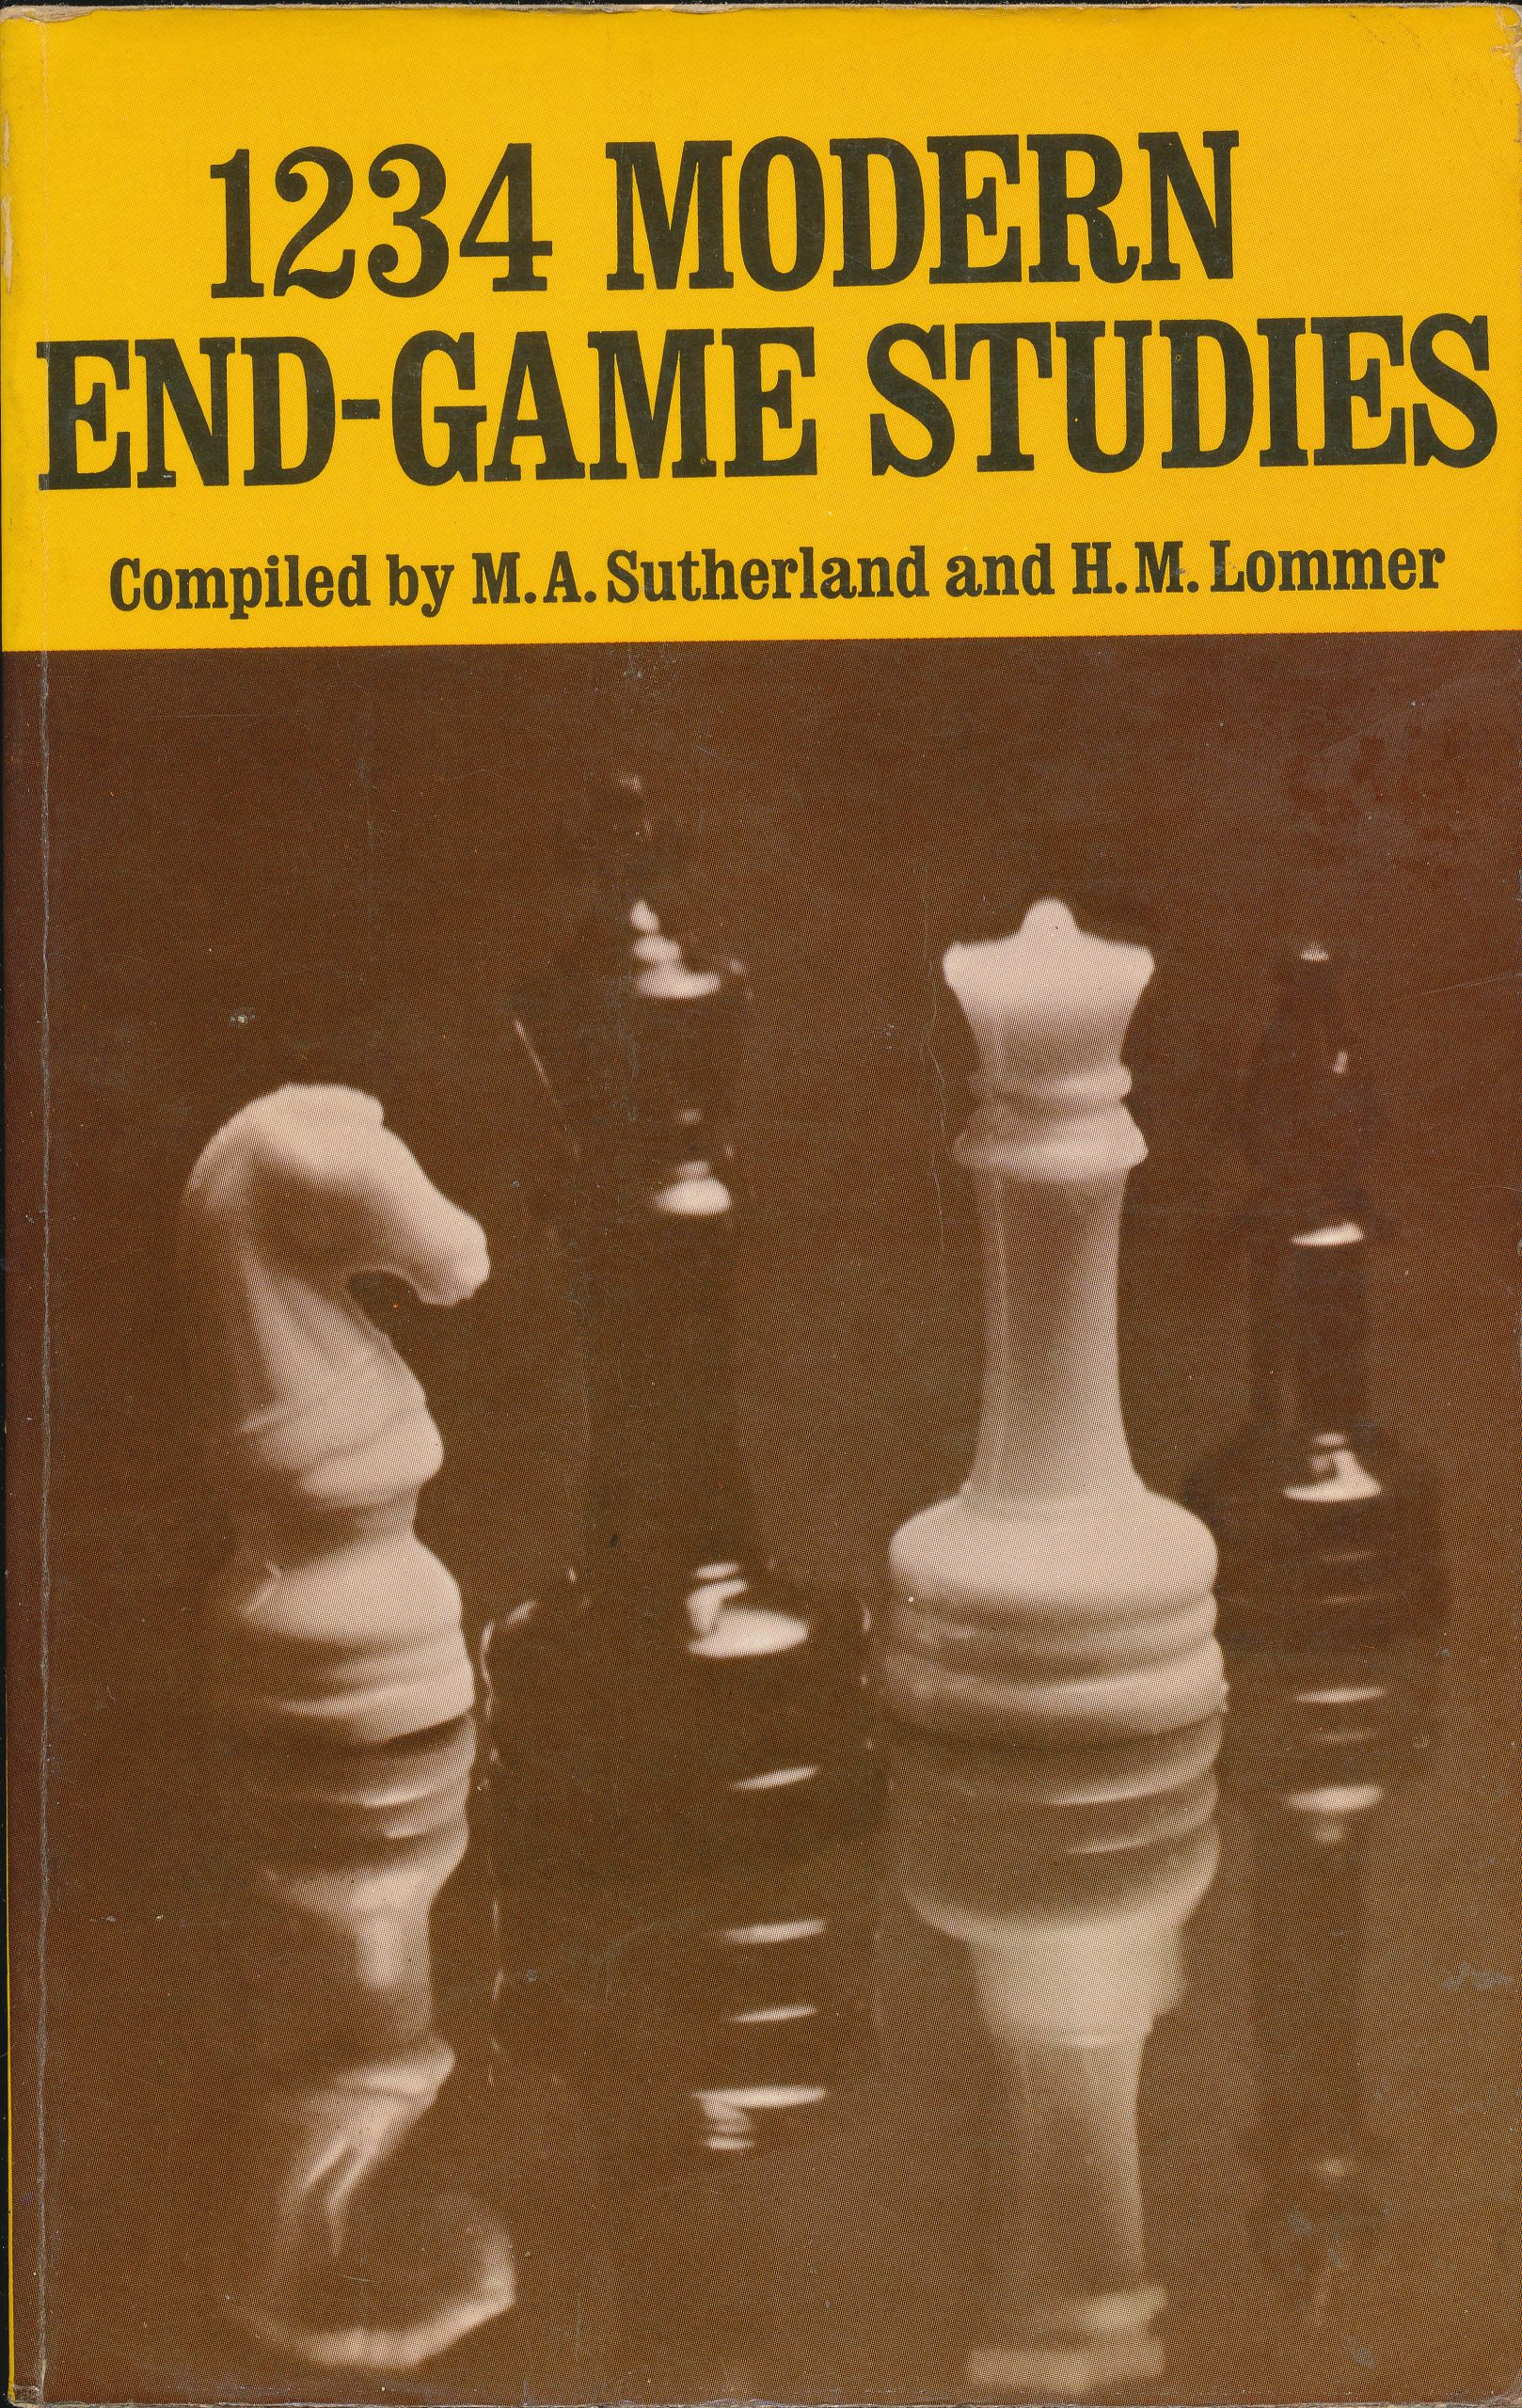 1234 Modern End-Game Studies, Lommer & Sutherland. Dover, 1938 (originally, this one 1967)